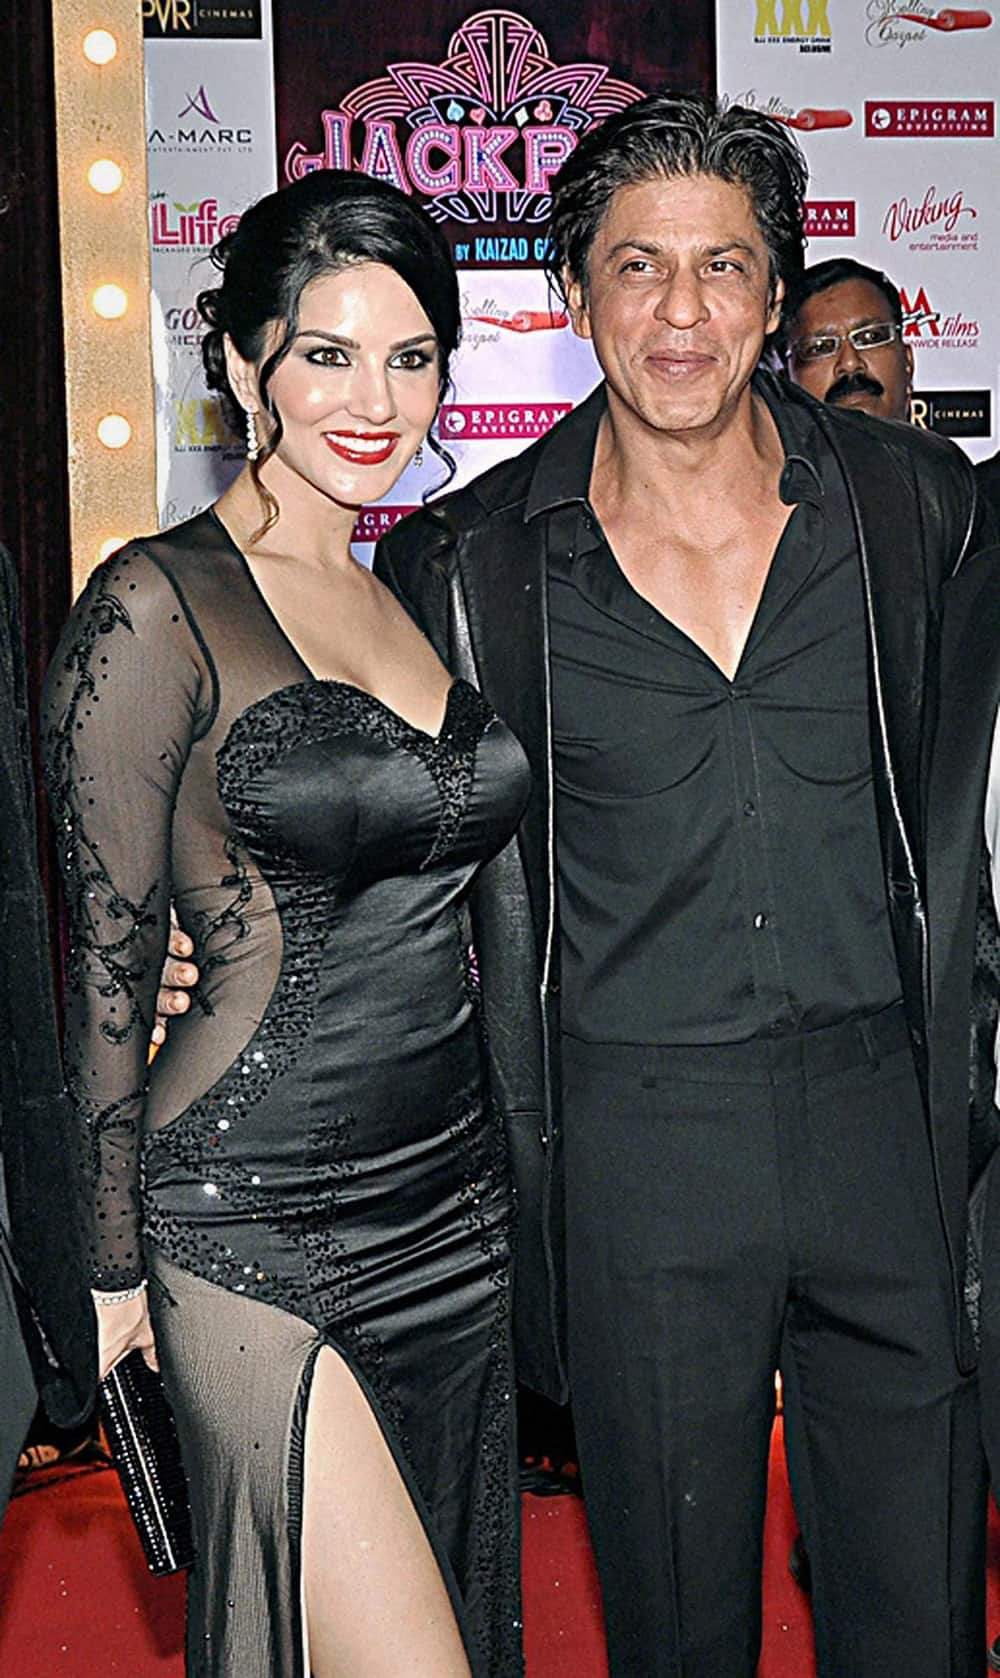 Sunny Leone with Shah Rukh Khan during the premiere of her upcoming movie 'Jackpot', in Mumbai.